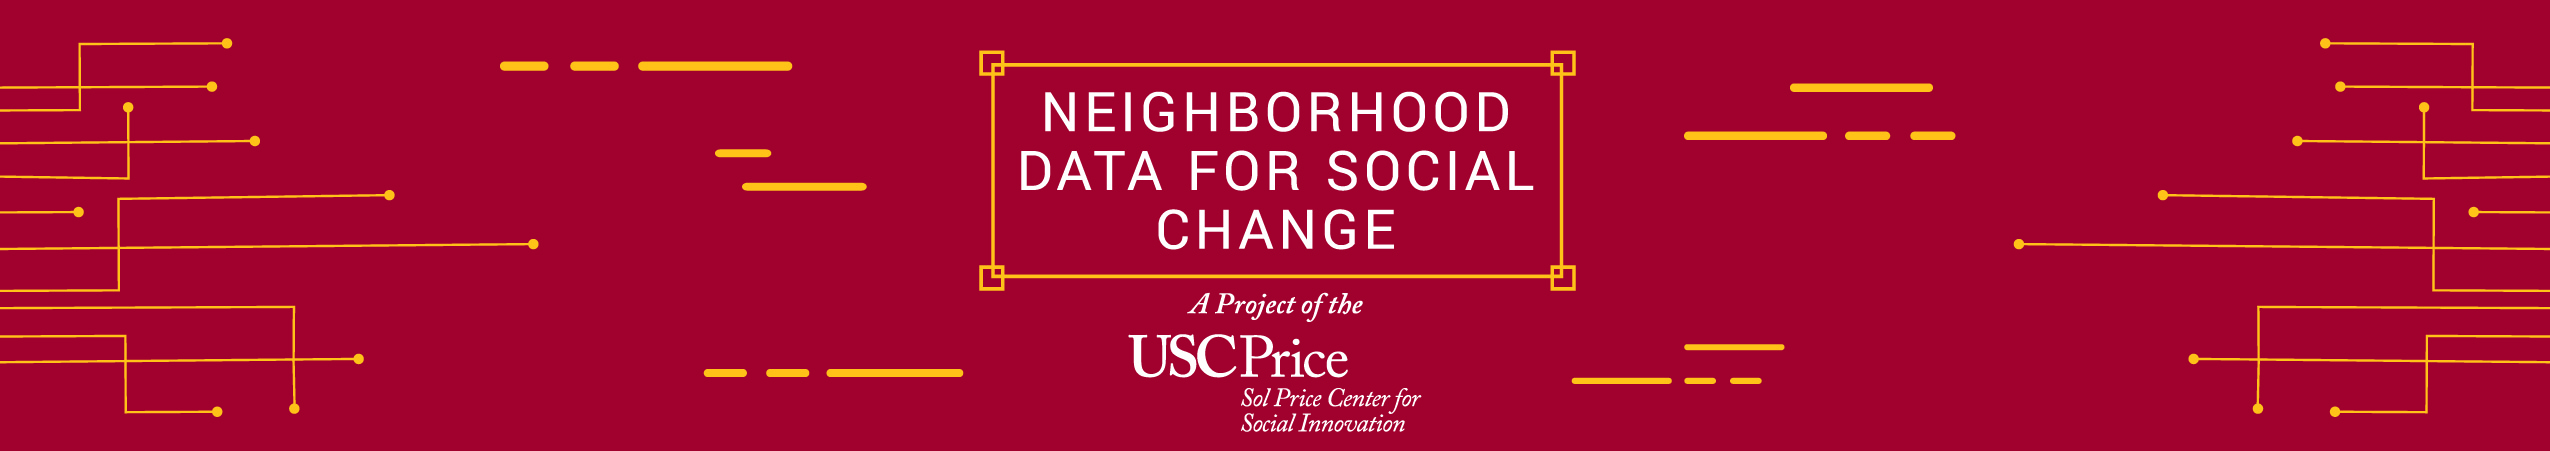 Neighborhood Data for Social Change